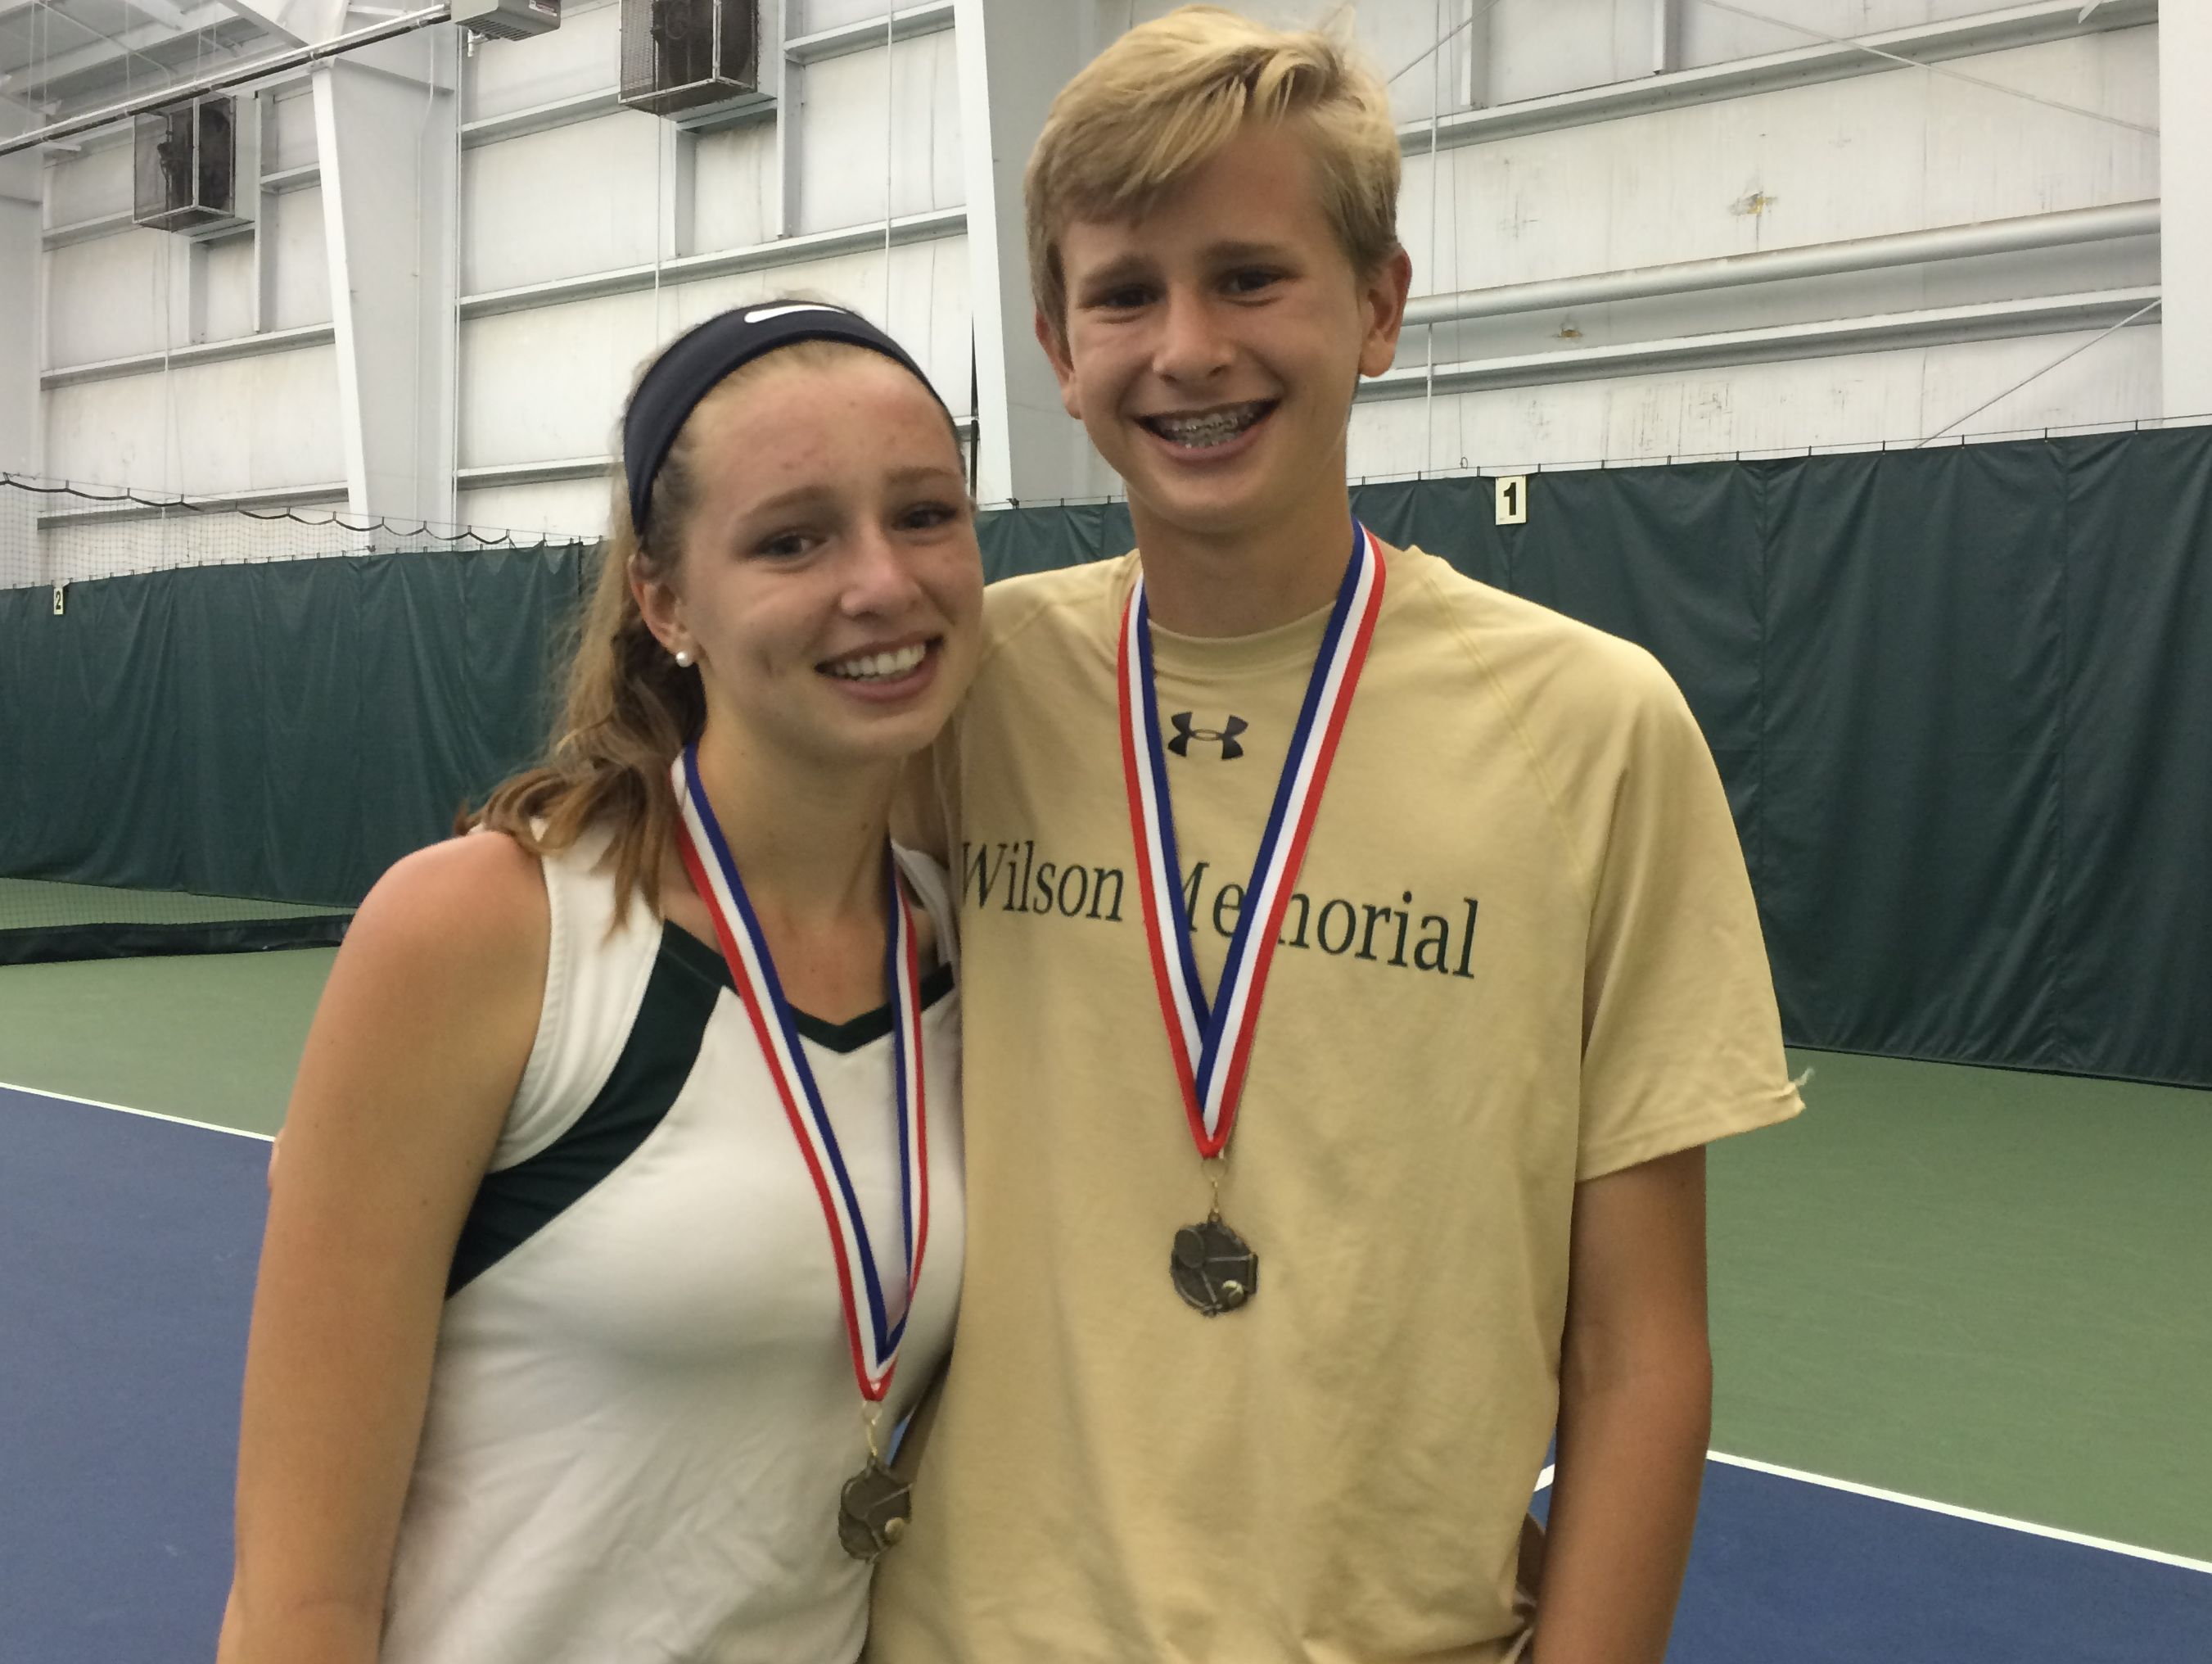 Wilson Memorial's Landon Aud, left, and brother Ryan pose with their medals after winning their respective Conference 36 singles title Thursday at Augusta Health's Lifetime Fitness Center.